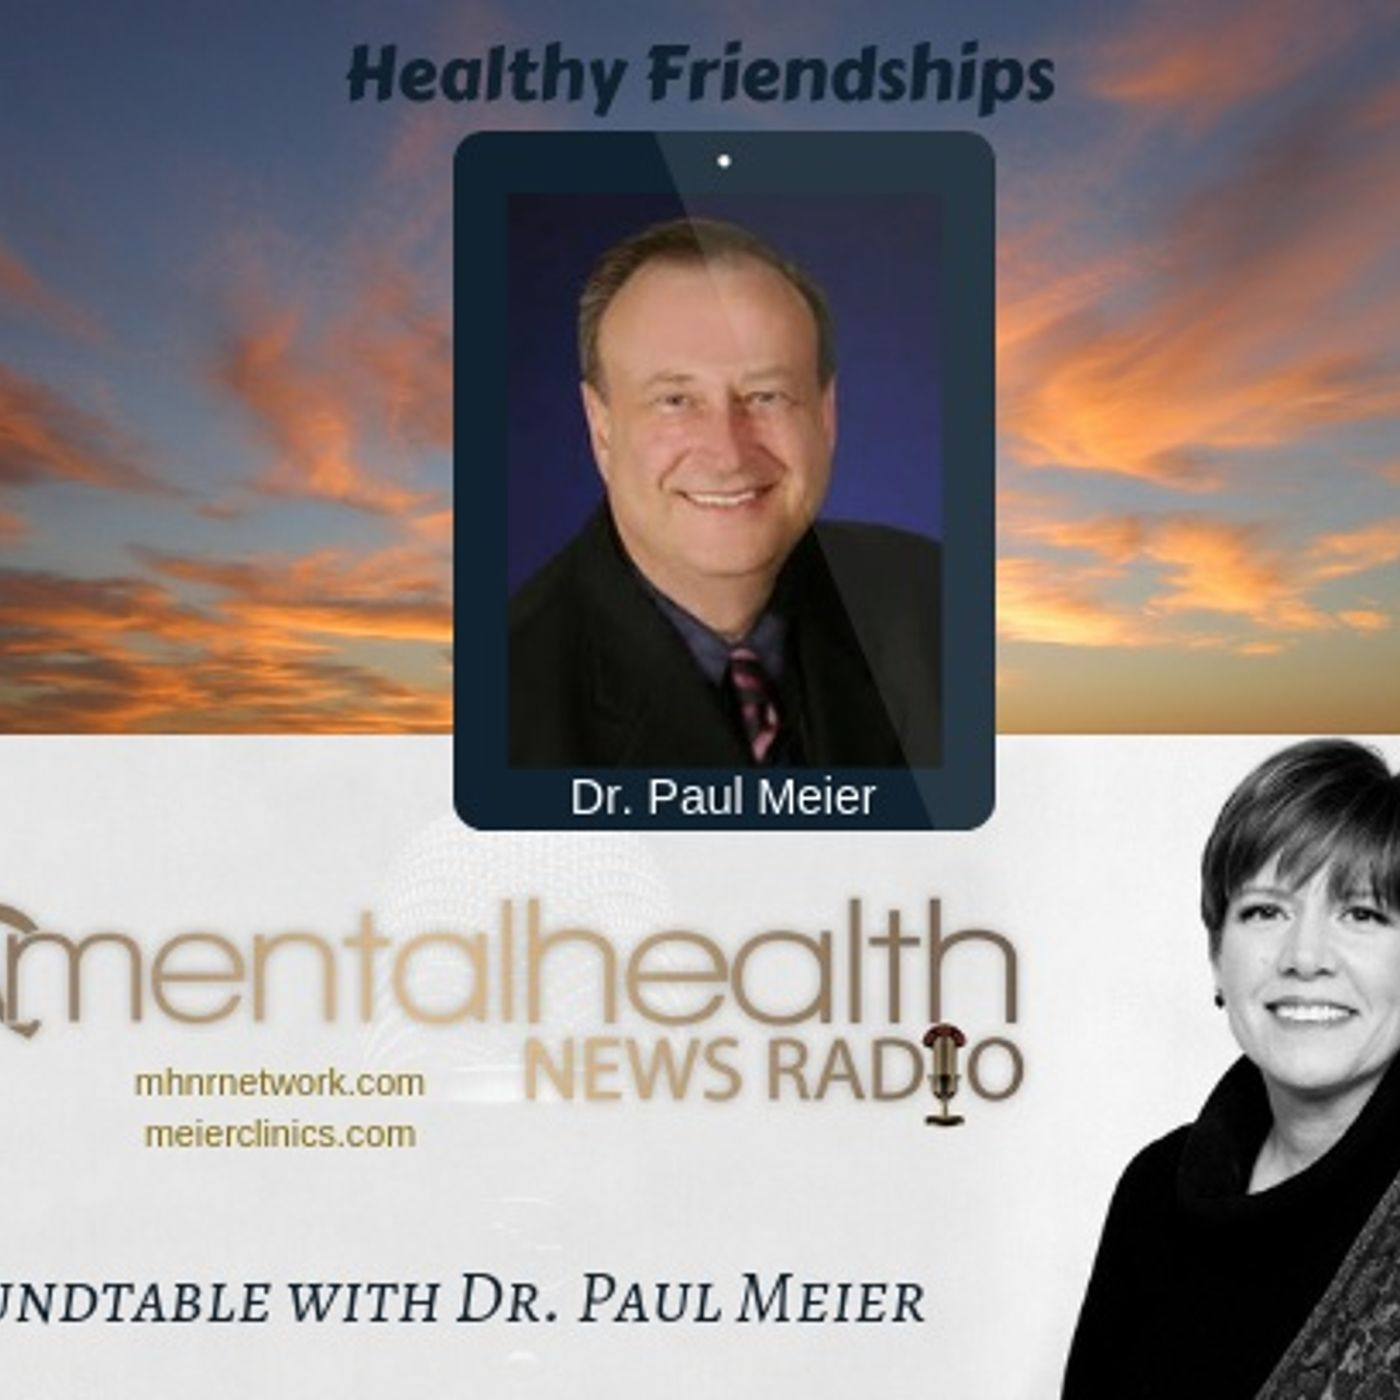 Mental Health News Radio - Roundtable with Dr. Paul Meier: Healthy Friendships